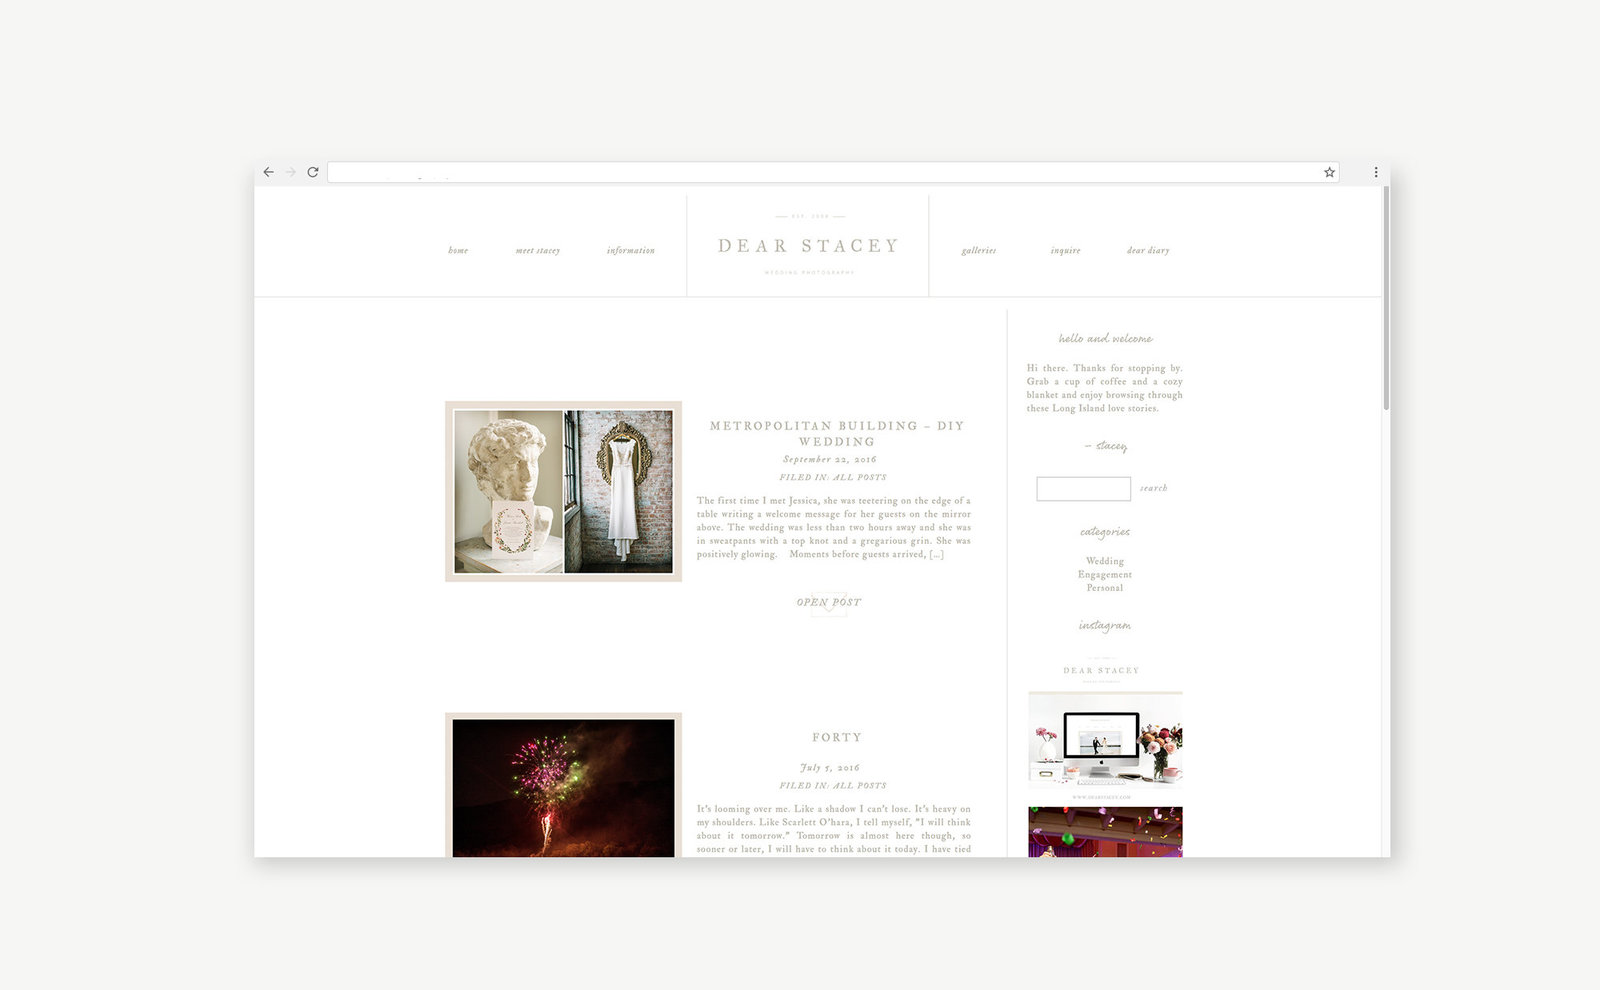 branding-for-photographers-web-design-dear-stacey-06